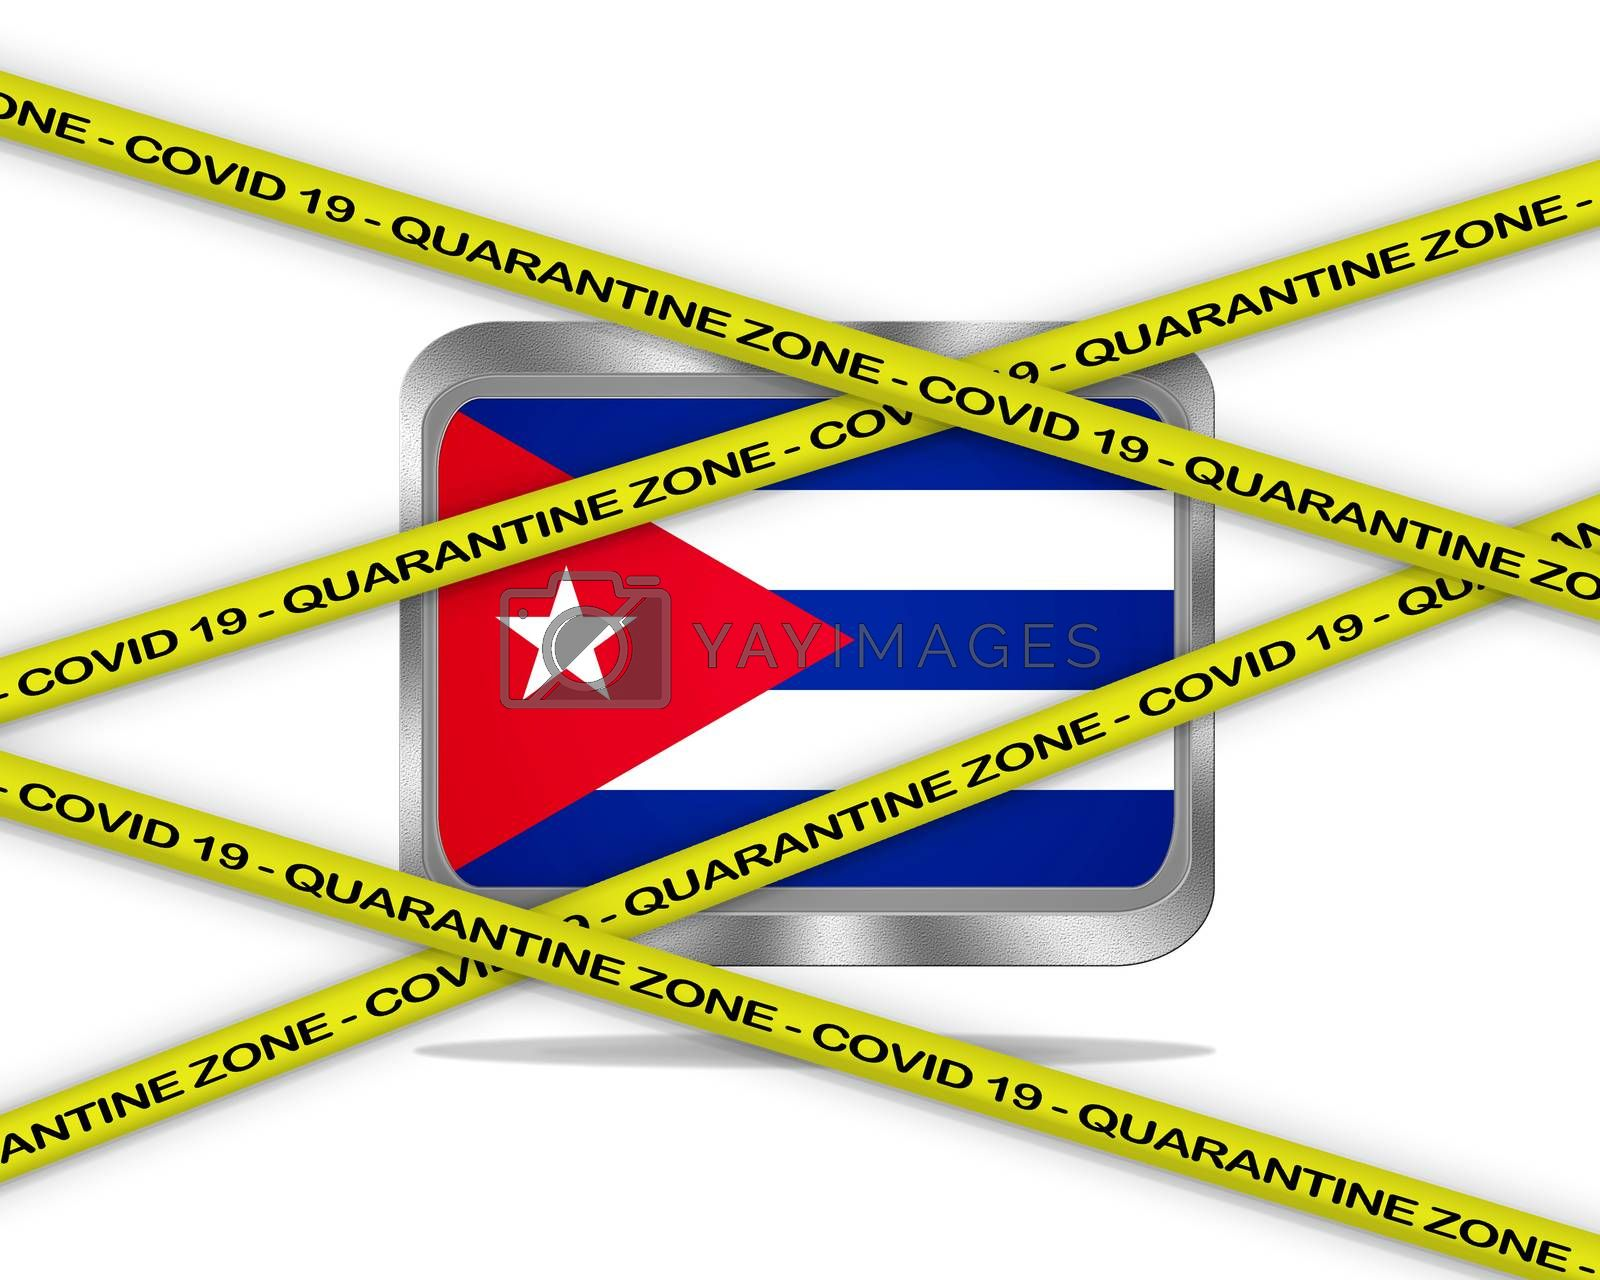 COVID-19 warning yellow ribbon written with: Quarantine zone Cover 19 on Cuba flag illustration. Coronavirus danger area, quarantined country.